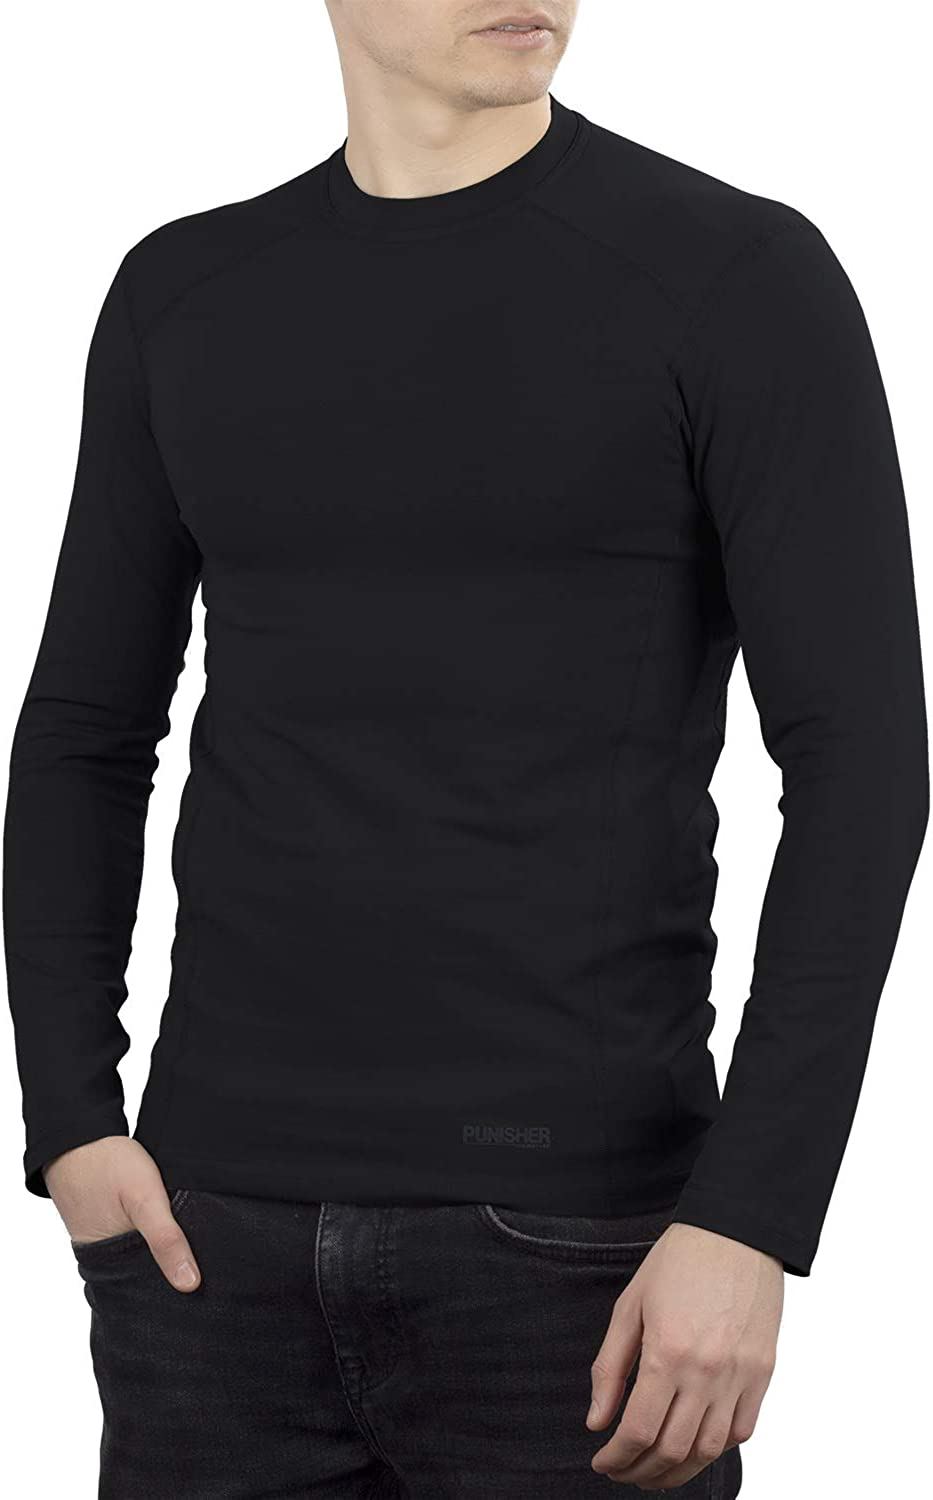 281Z Mens Military Stretch Cotton Long Sleeve T-Shirt - Tactical Hiking Outdoor Undershirt - Punisher Combat Line (Black)